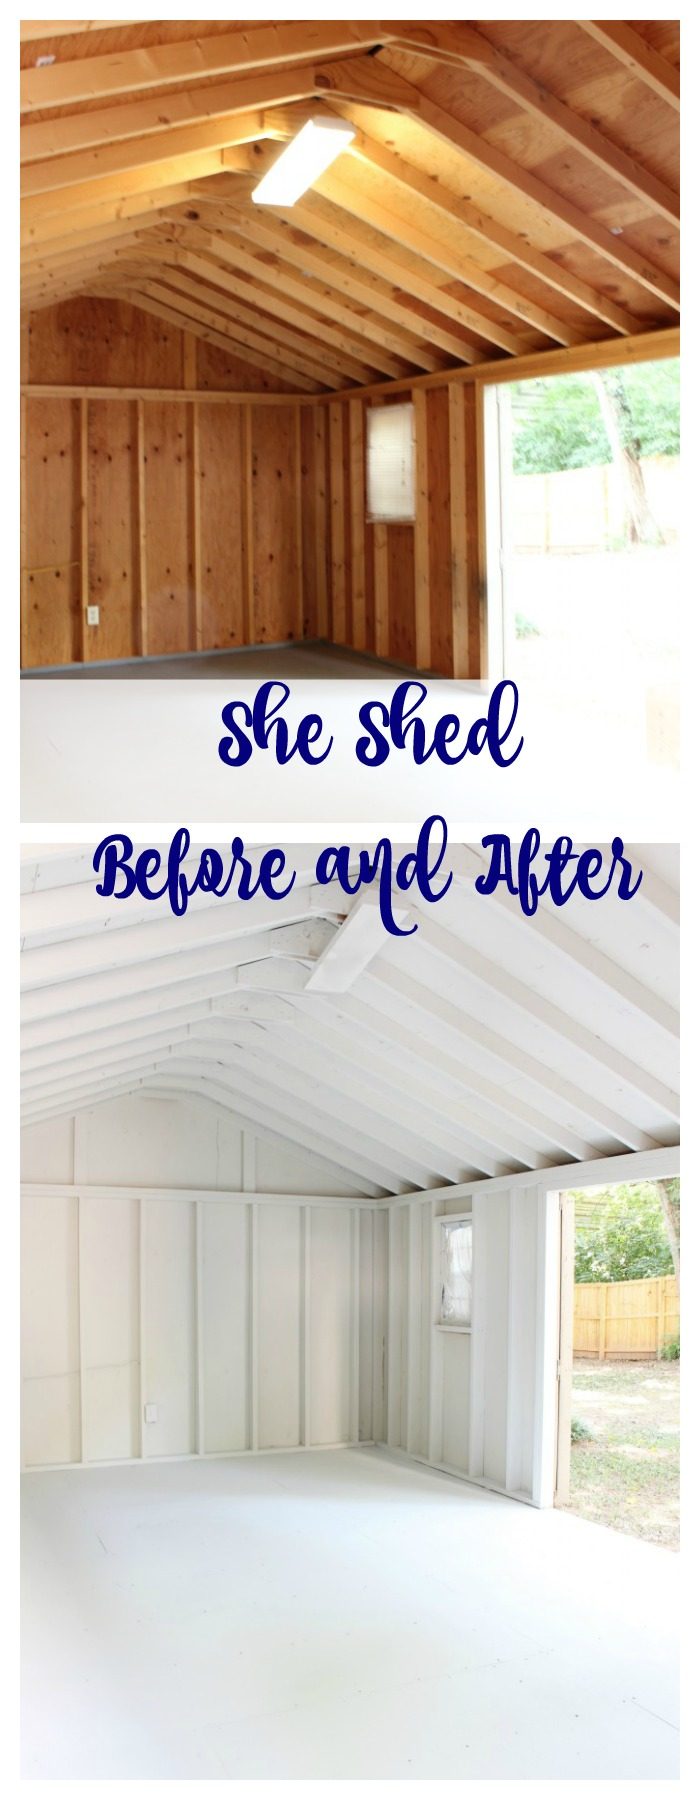 She Shed painted with Nebulous Sherwin Williams paint. One Room Challenge